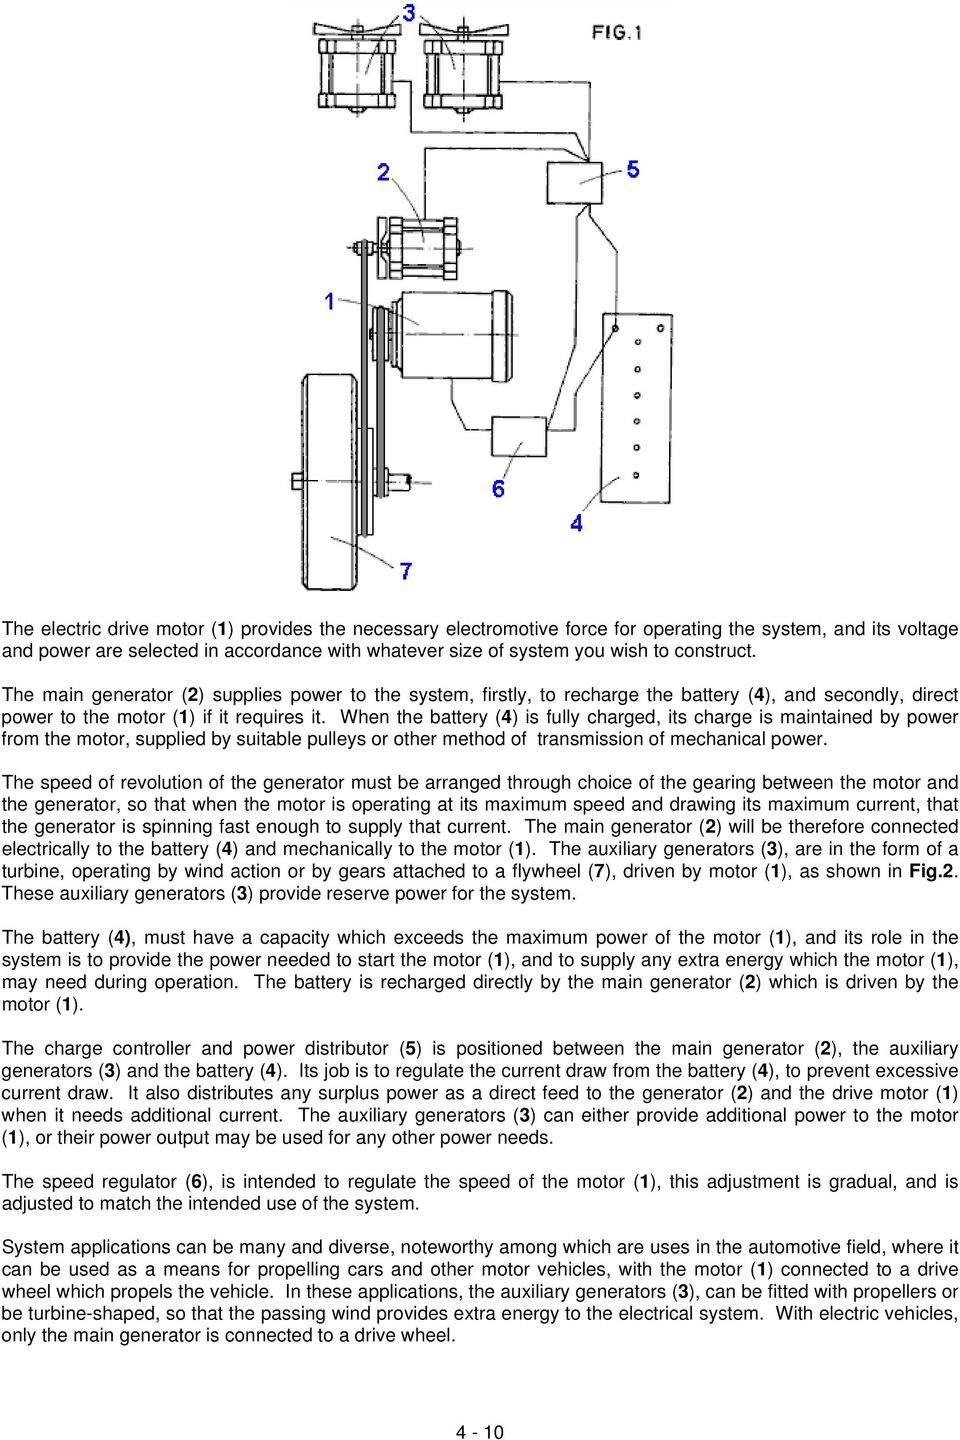 Chapter 4 Gravity Powered Systems Pdf Alternating Current Generator Diagram Besides Bedini Motor When The Battery Is Fully Charged Its Charge Maintained By Power